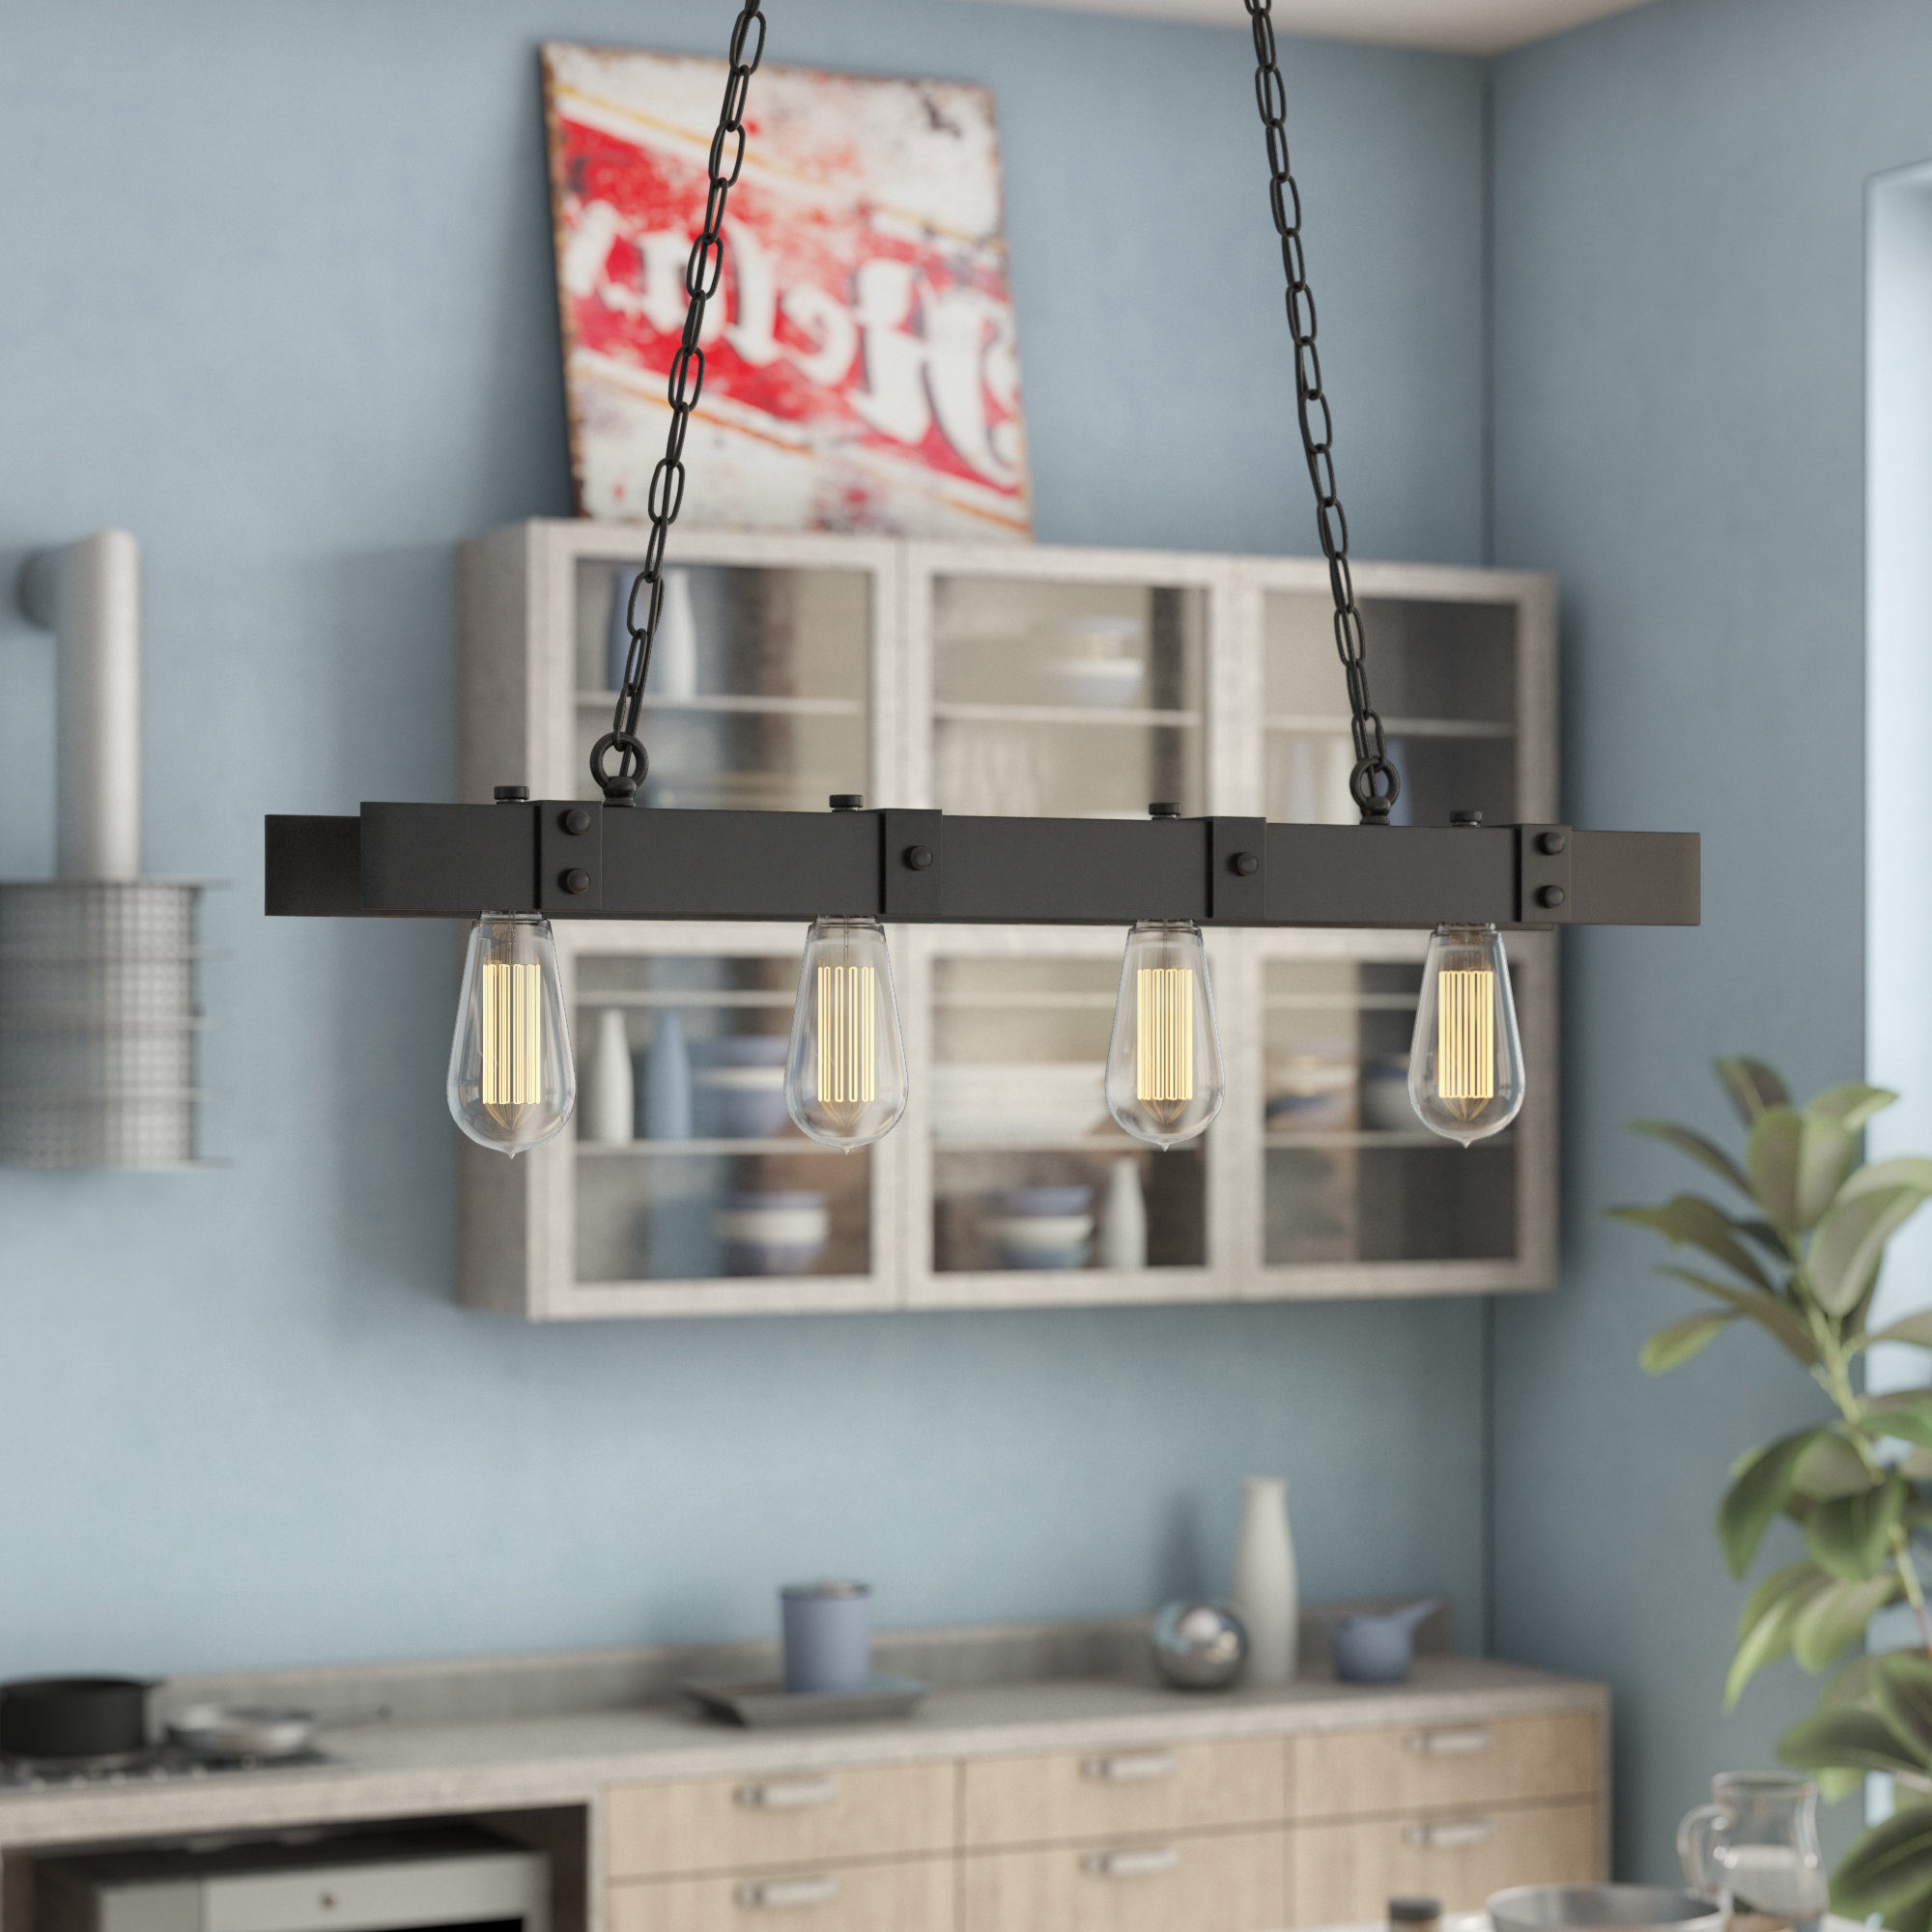 Schutt 4 Light Kitchen Island Pendants With Regard To Popular Kitchen Island Williston Forge Pendant Lighting You'll Love (View 20 of 25)